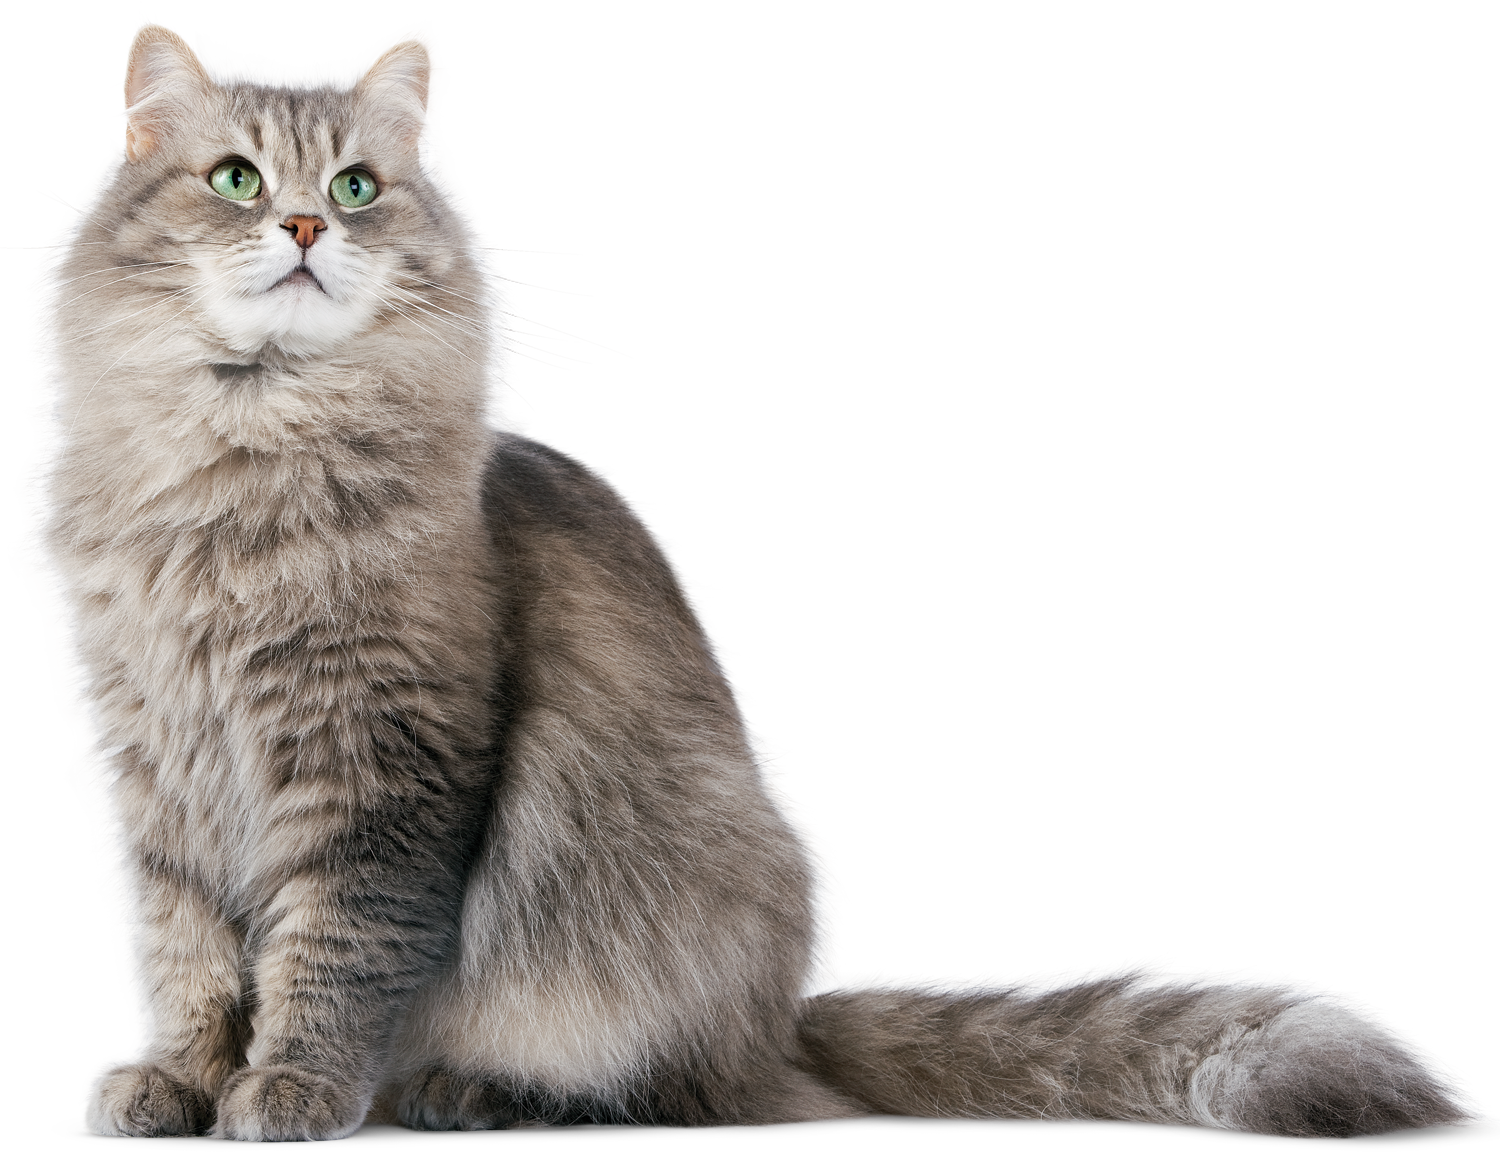 Cat Png - Cat PNG HD